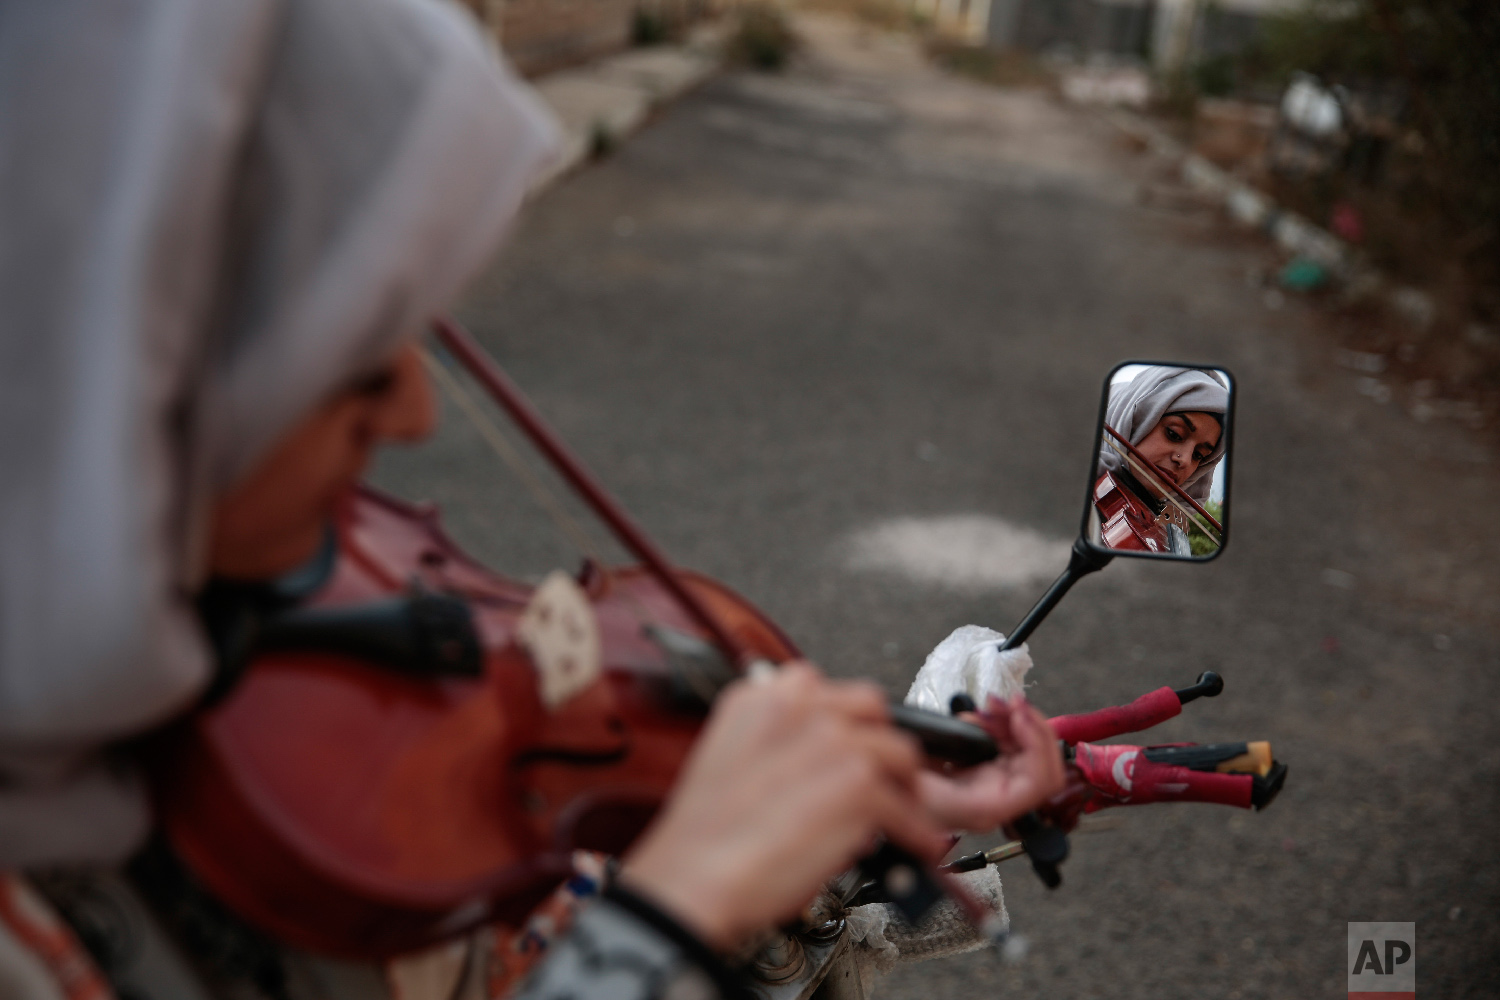 A female Yemeni music student practices playing the violin during a music class at the Cultural Centre in Sanaa, Yemen on Sunday, April 8, 2018.(AP Photo/Hani Mohammed)